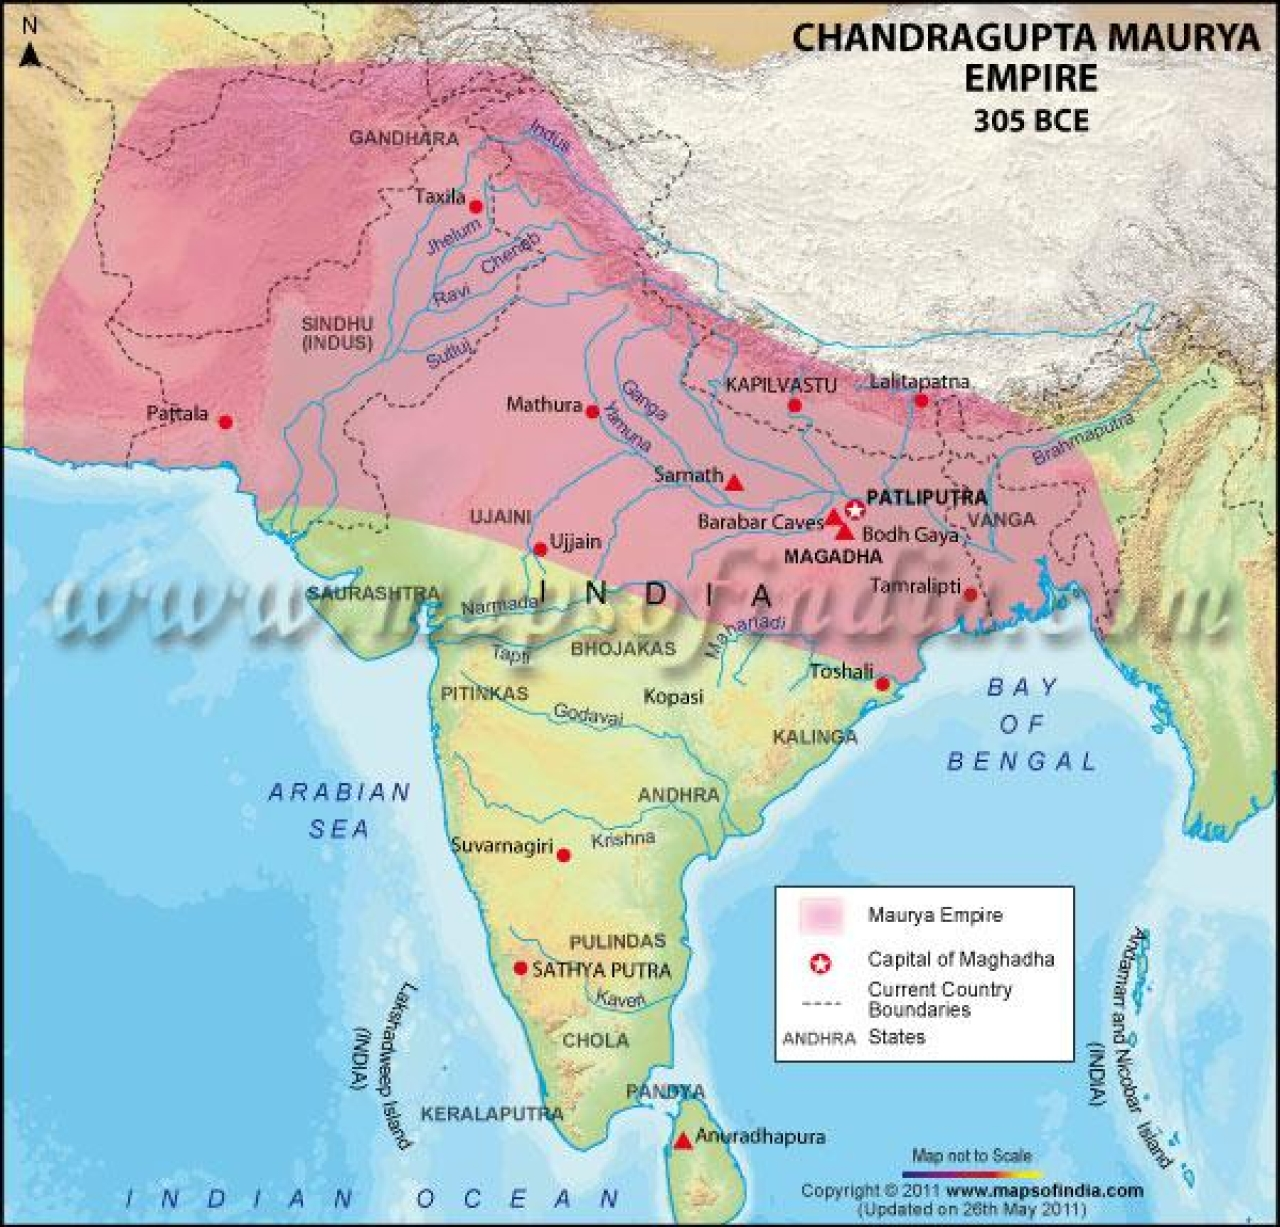 Chandragupta Maurya's empire post his victory over Seleucus extending to Seleucid Persia (Maps of India)